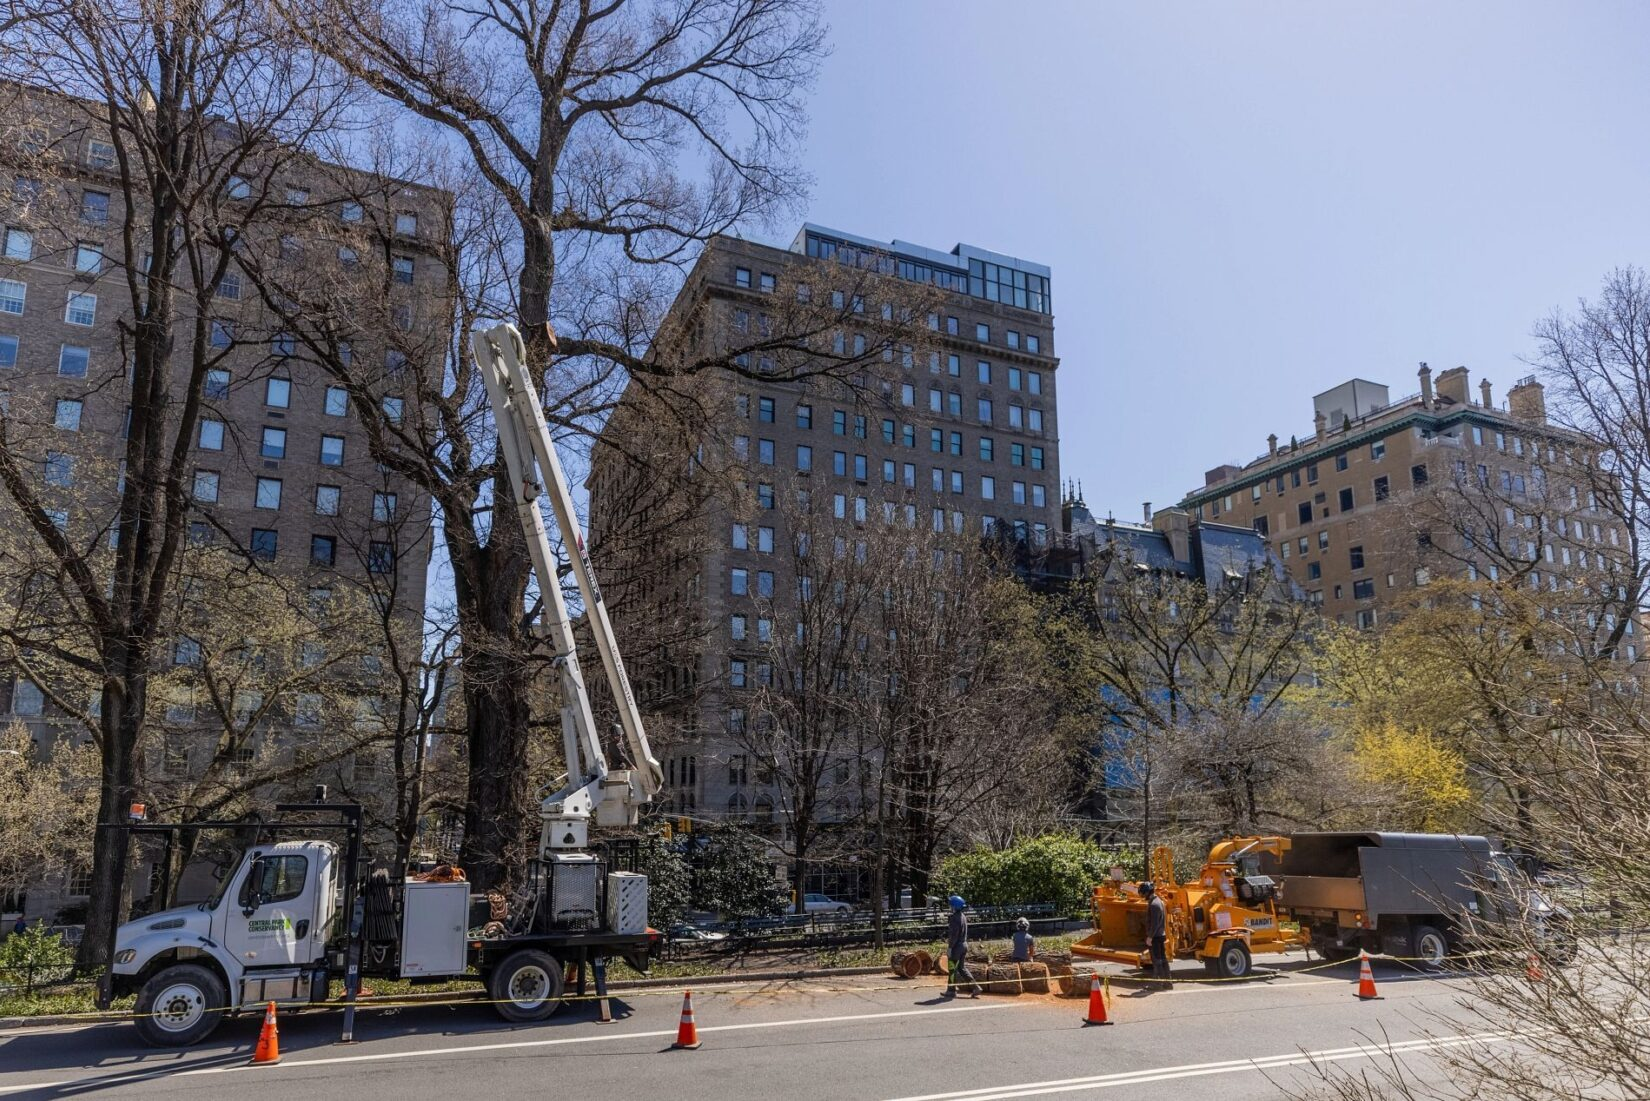 The Conservancy deploying a truck with a cherry picker to care for trees beside a park drive.